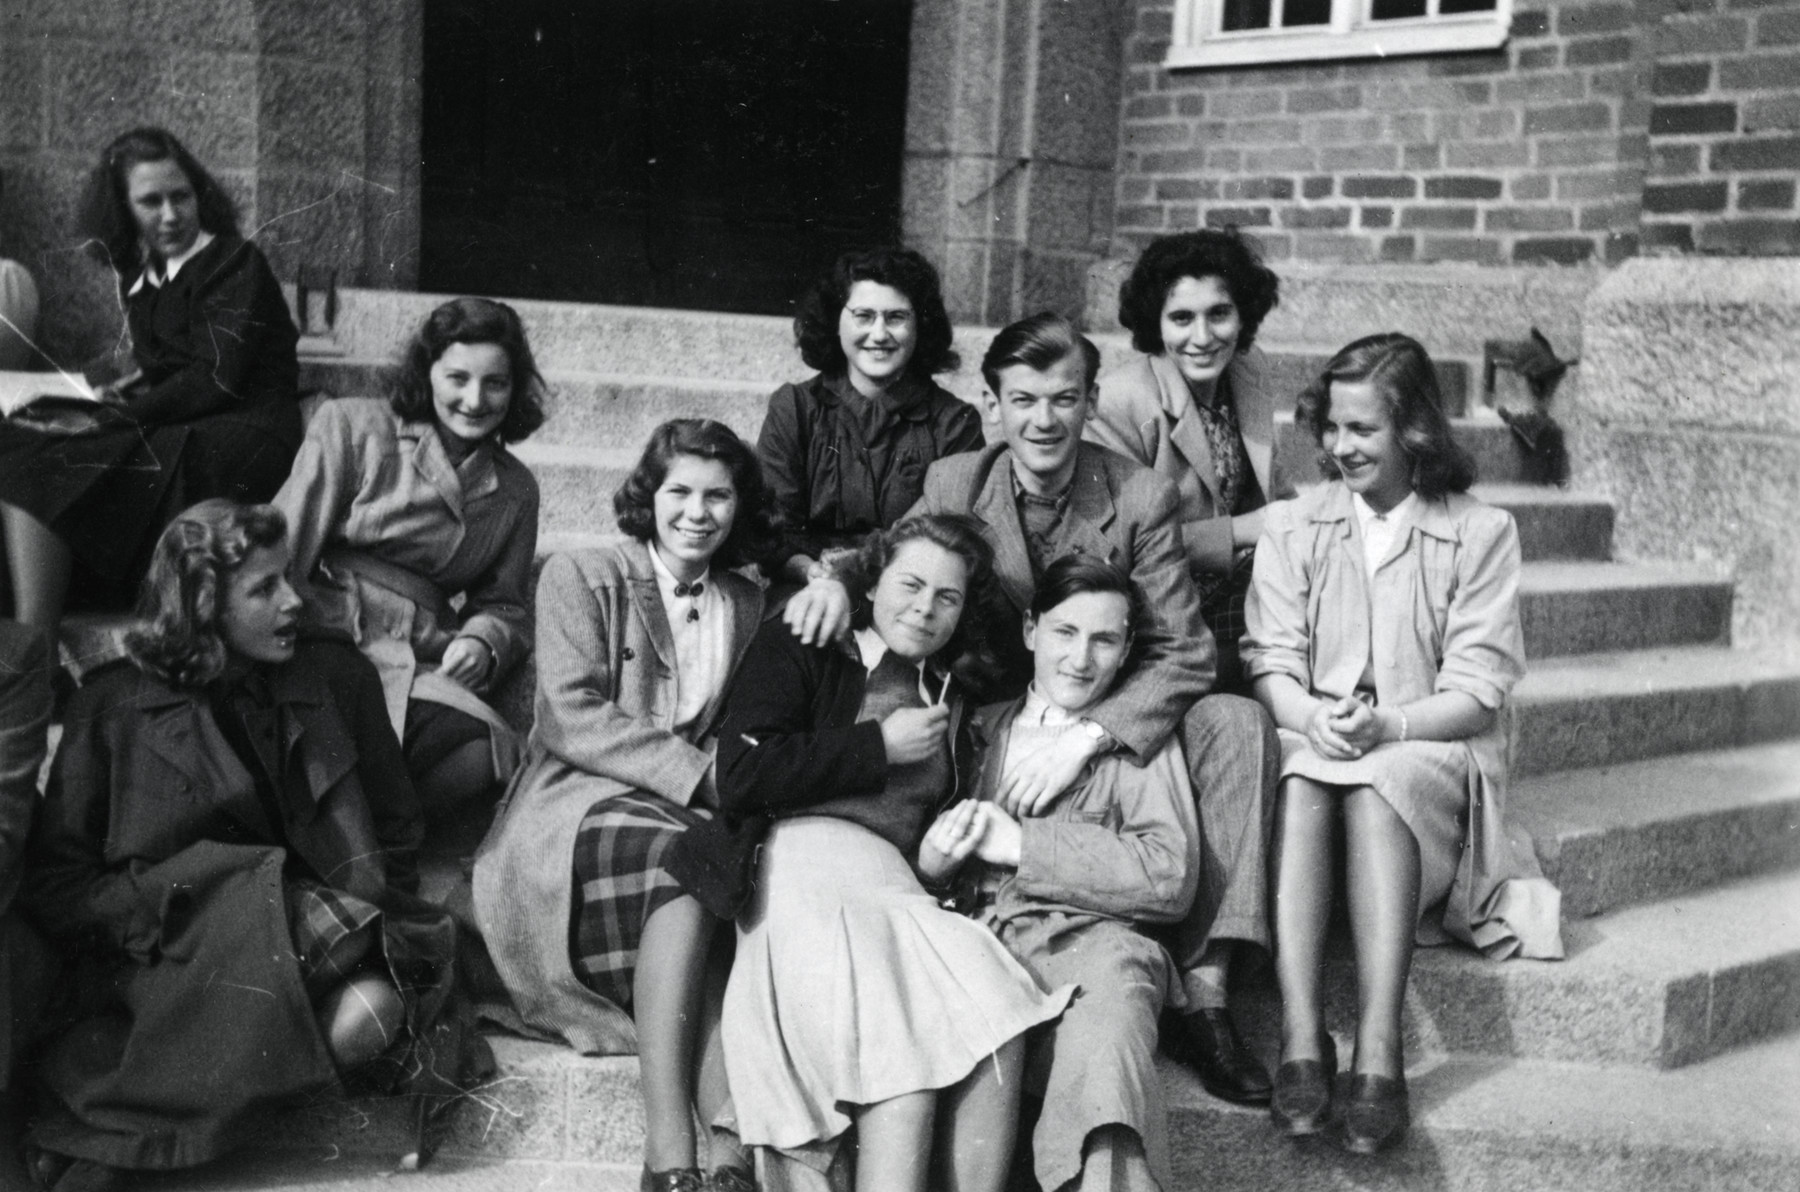 Students in the Norwegian high school in Uppsala, Sweden.  Some are Norwegian Jewish refugees.  Among those pictured are Celia Century (top, center wearing a dark shirt), Rahel (Tulla) Blomberg (right) and Dagfinn Bernstein (front).